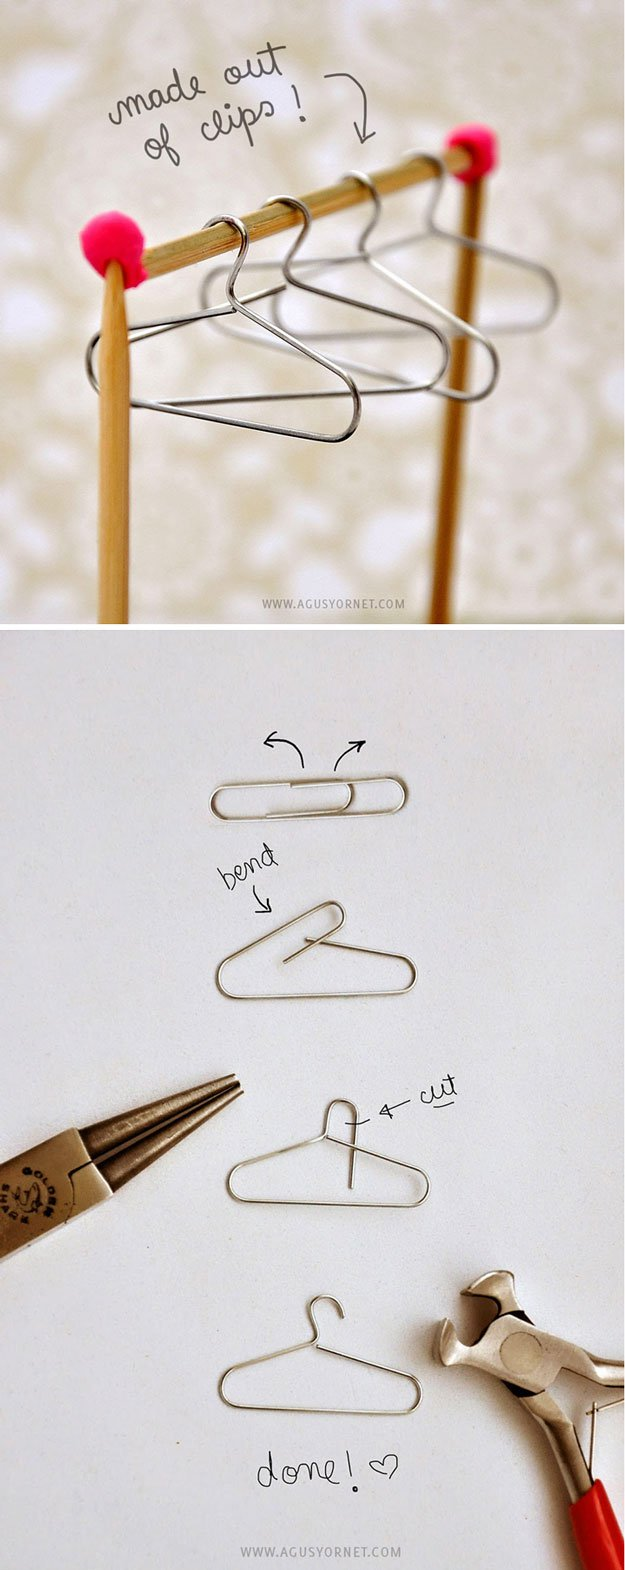 Cool Mini Homemade Crafts and Scrapbook Ideas | https://diyprojects.com/cool-scrapbook-ideas-you-should-make/